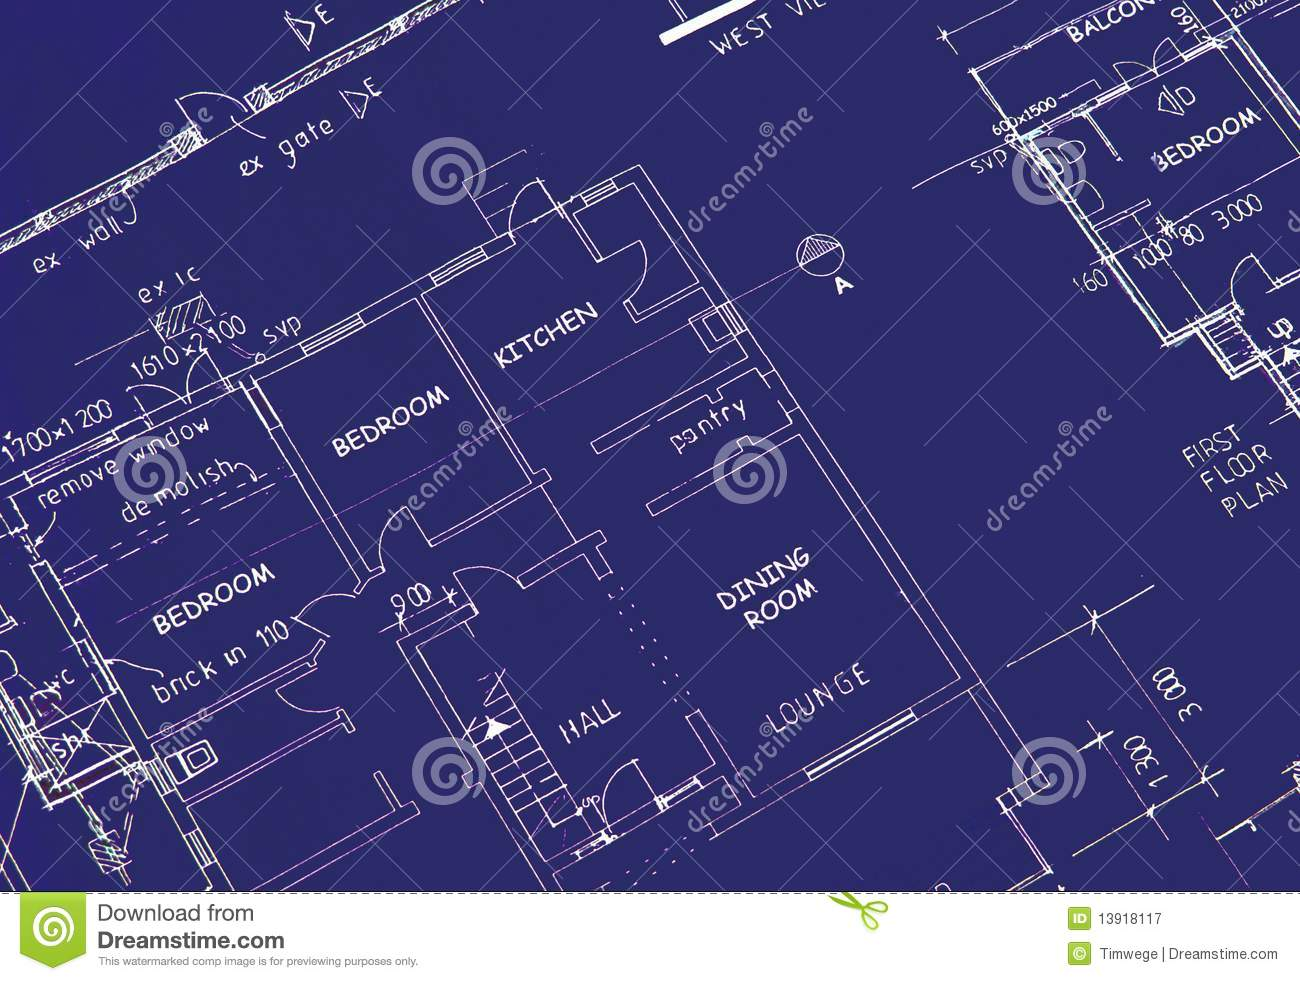 Swell Blueprint Of Building Plans Royalty Free Stock Photography Image Inspirational Interior Design Netriciaus